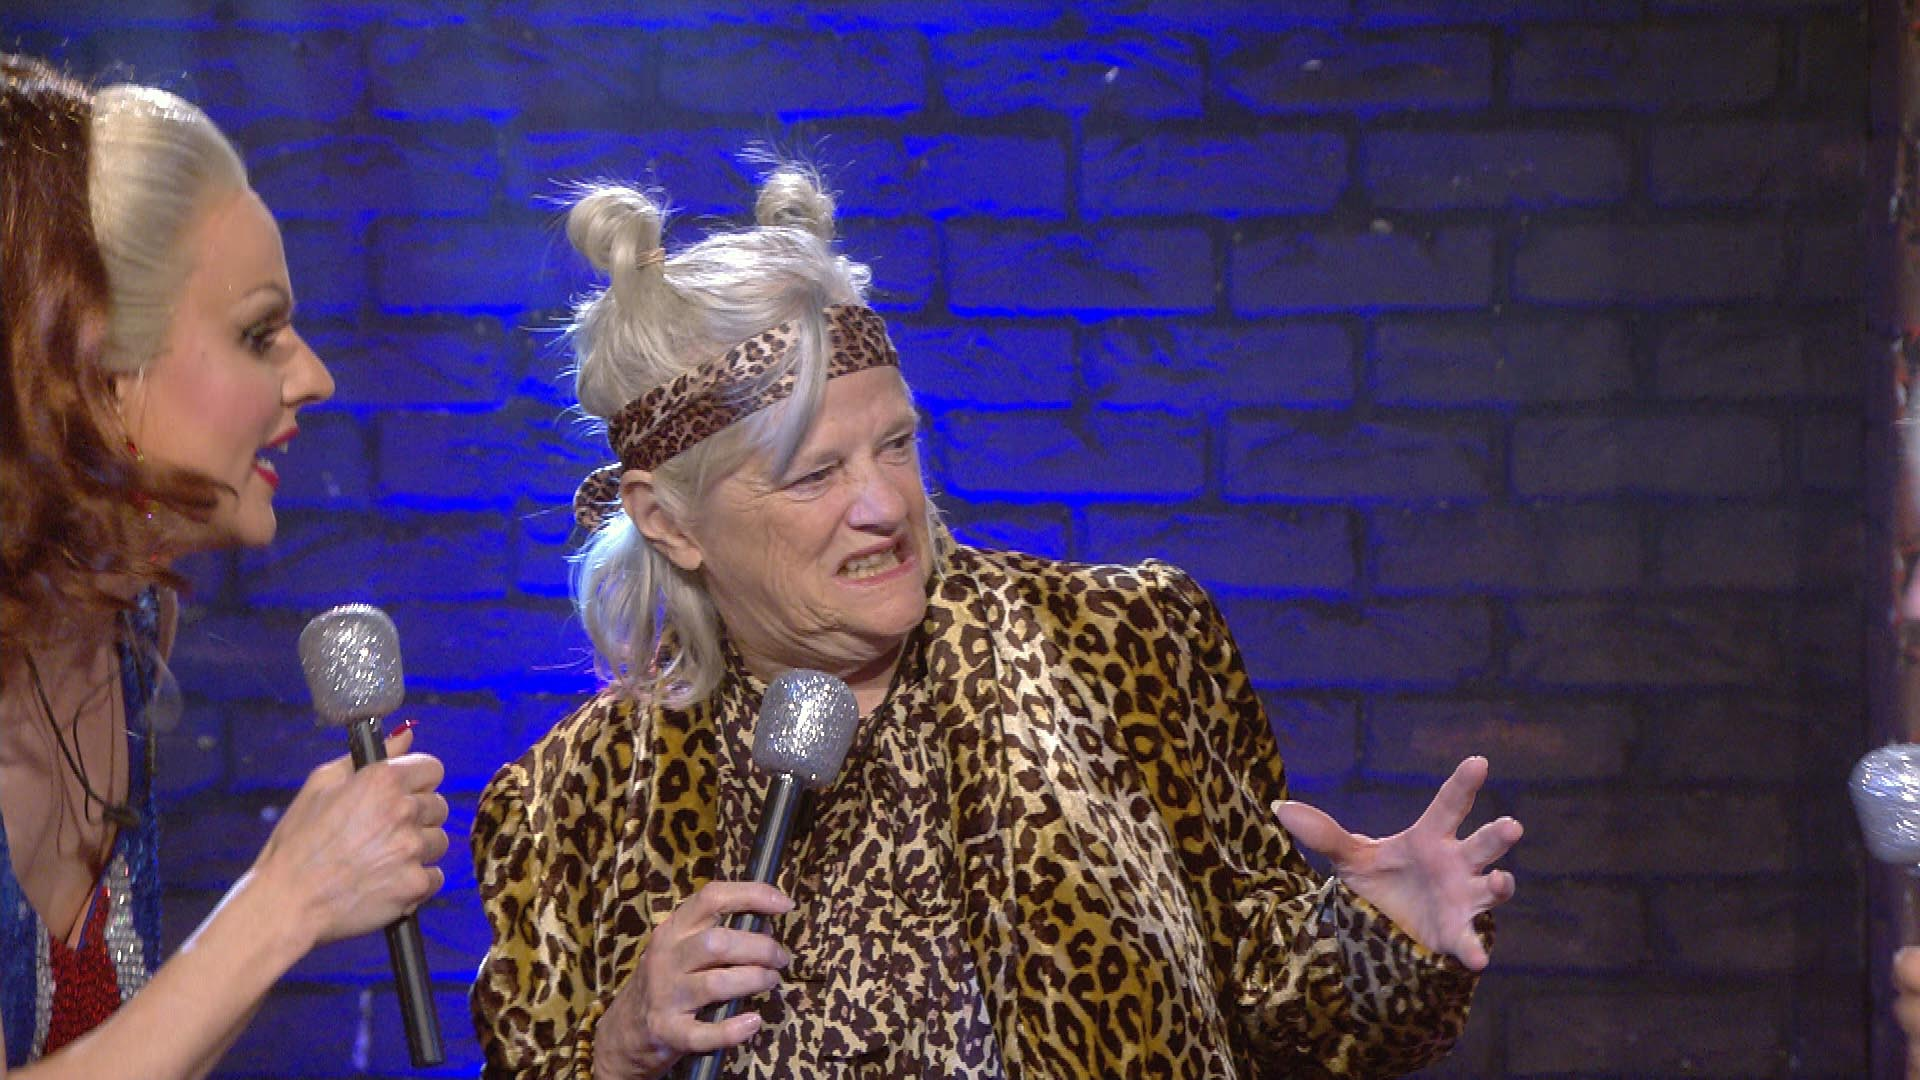 CBB's Ann Widdecombe transforms into a growling Mel B as group perform the Spice Girls